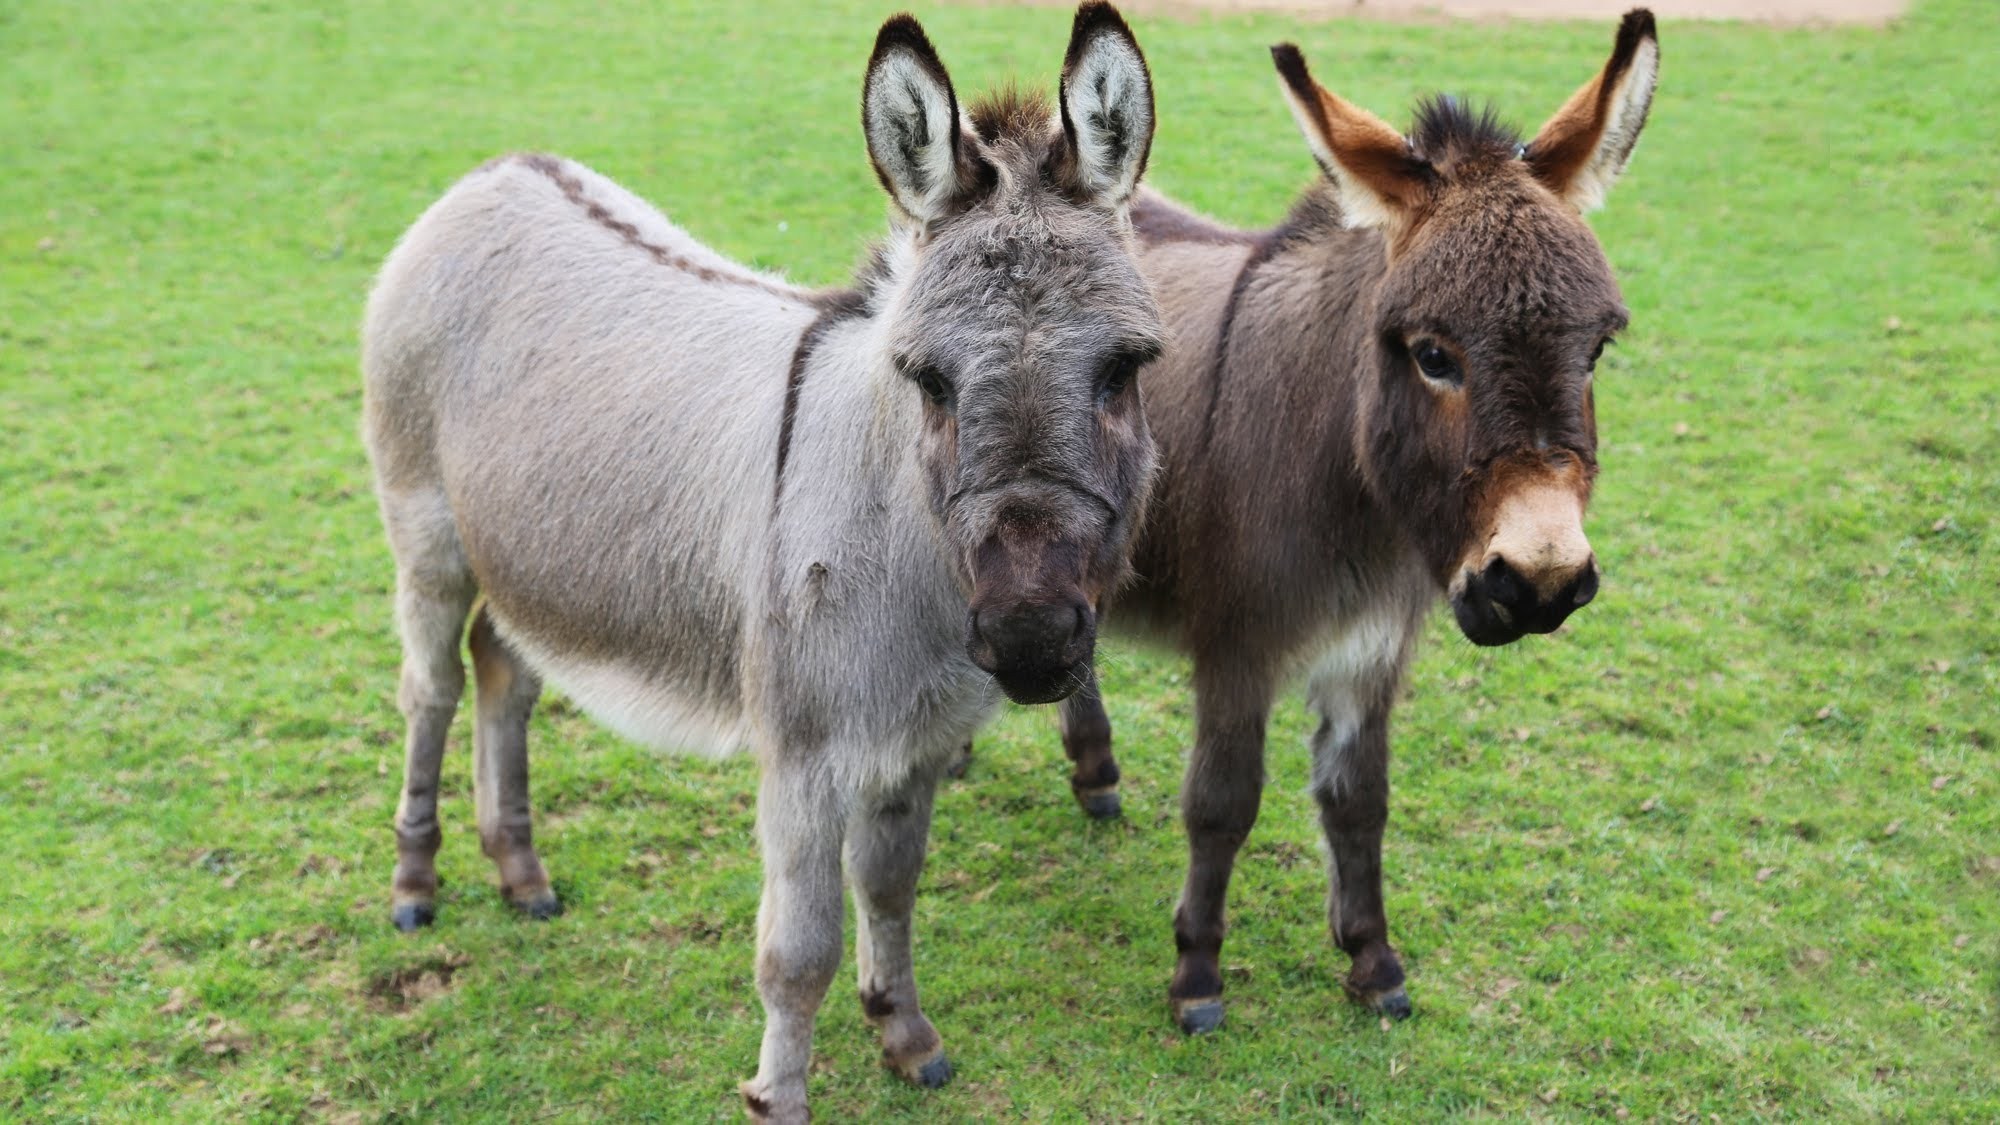 Meet Trevor and Tulip the miniature donkeys! - YouTube